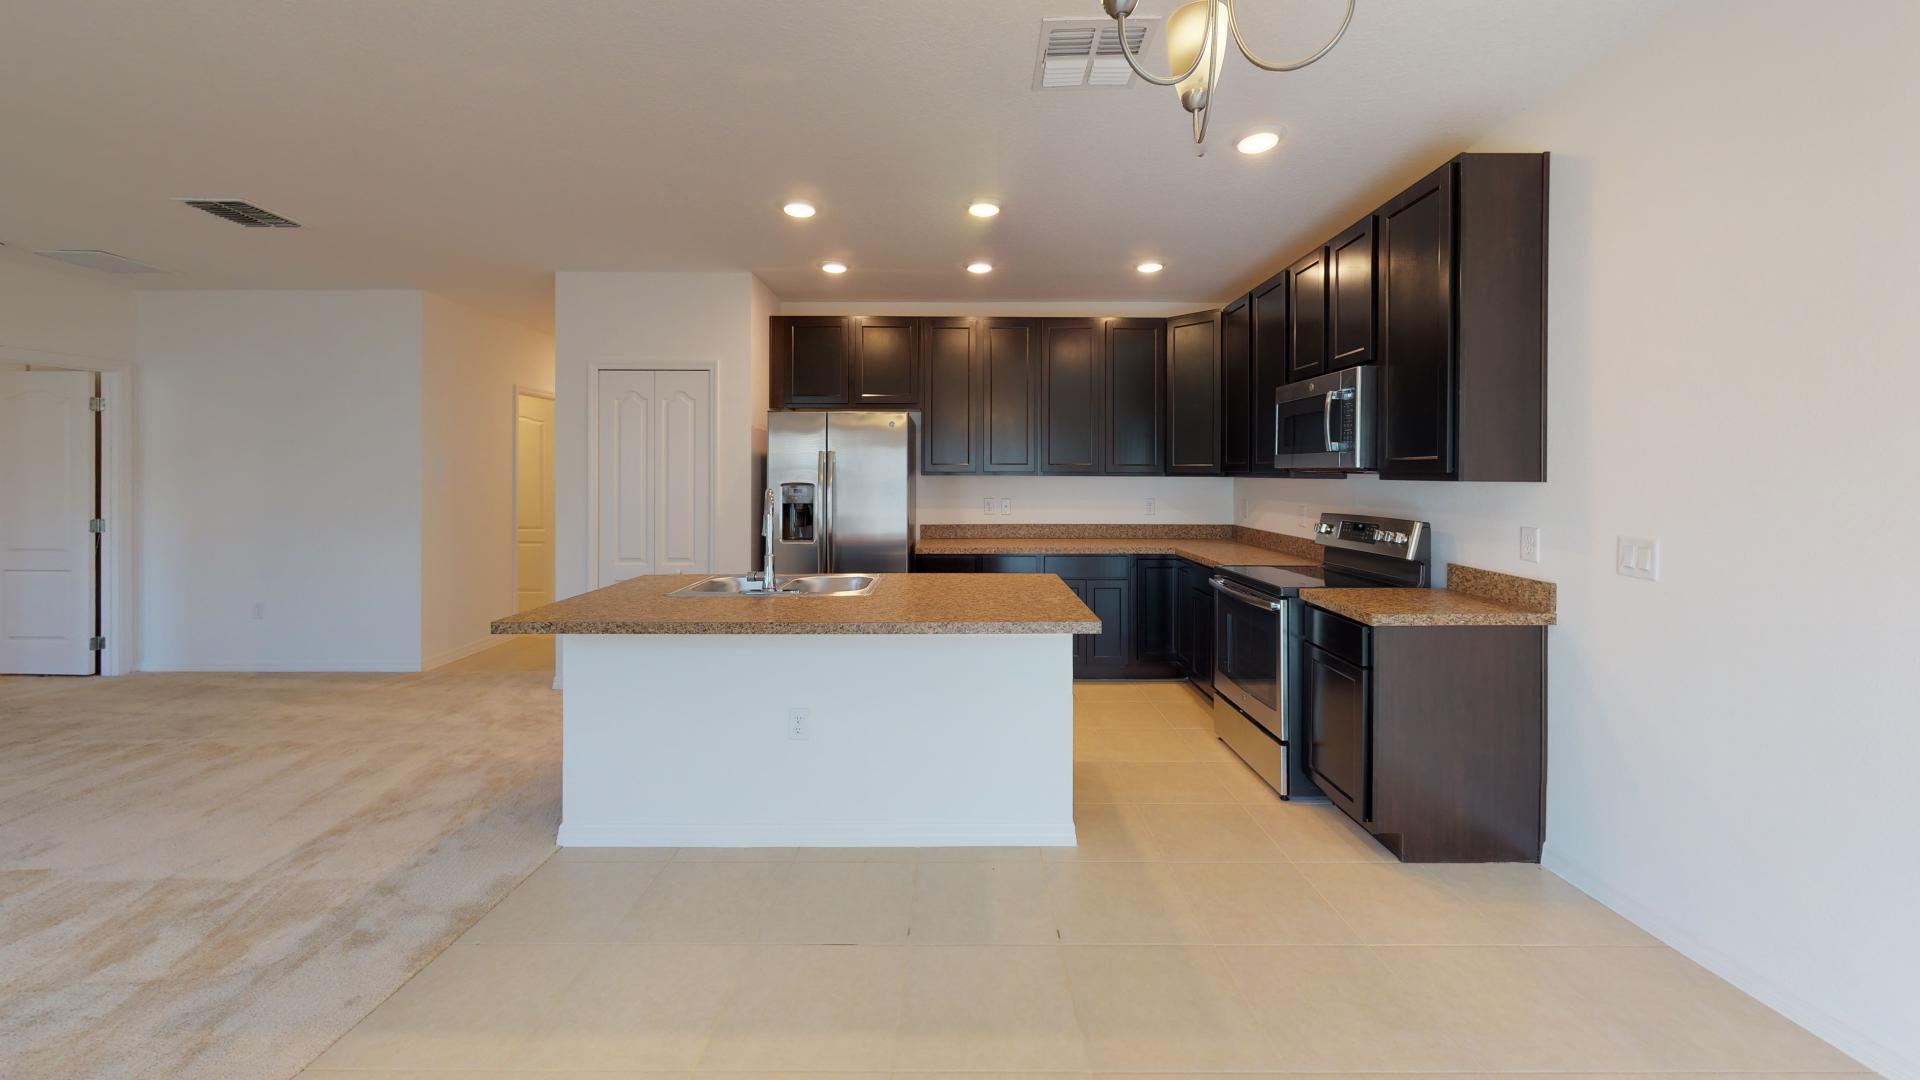 Kitchen featured in the Avella By Maronda Homes in Melbourne, FL